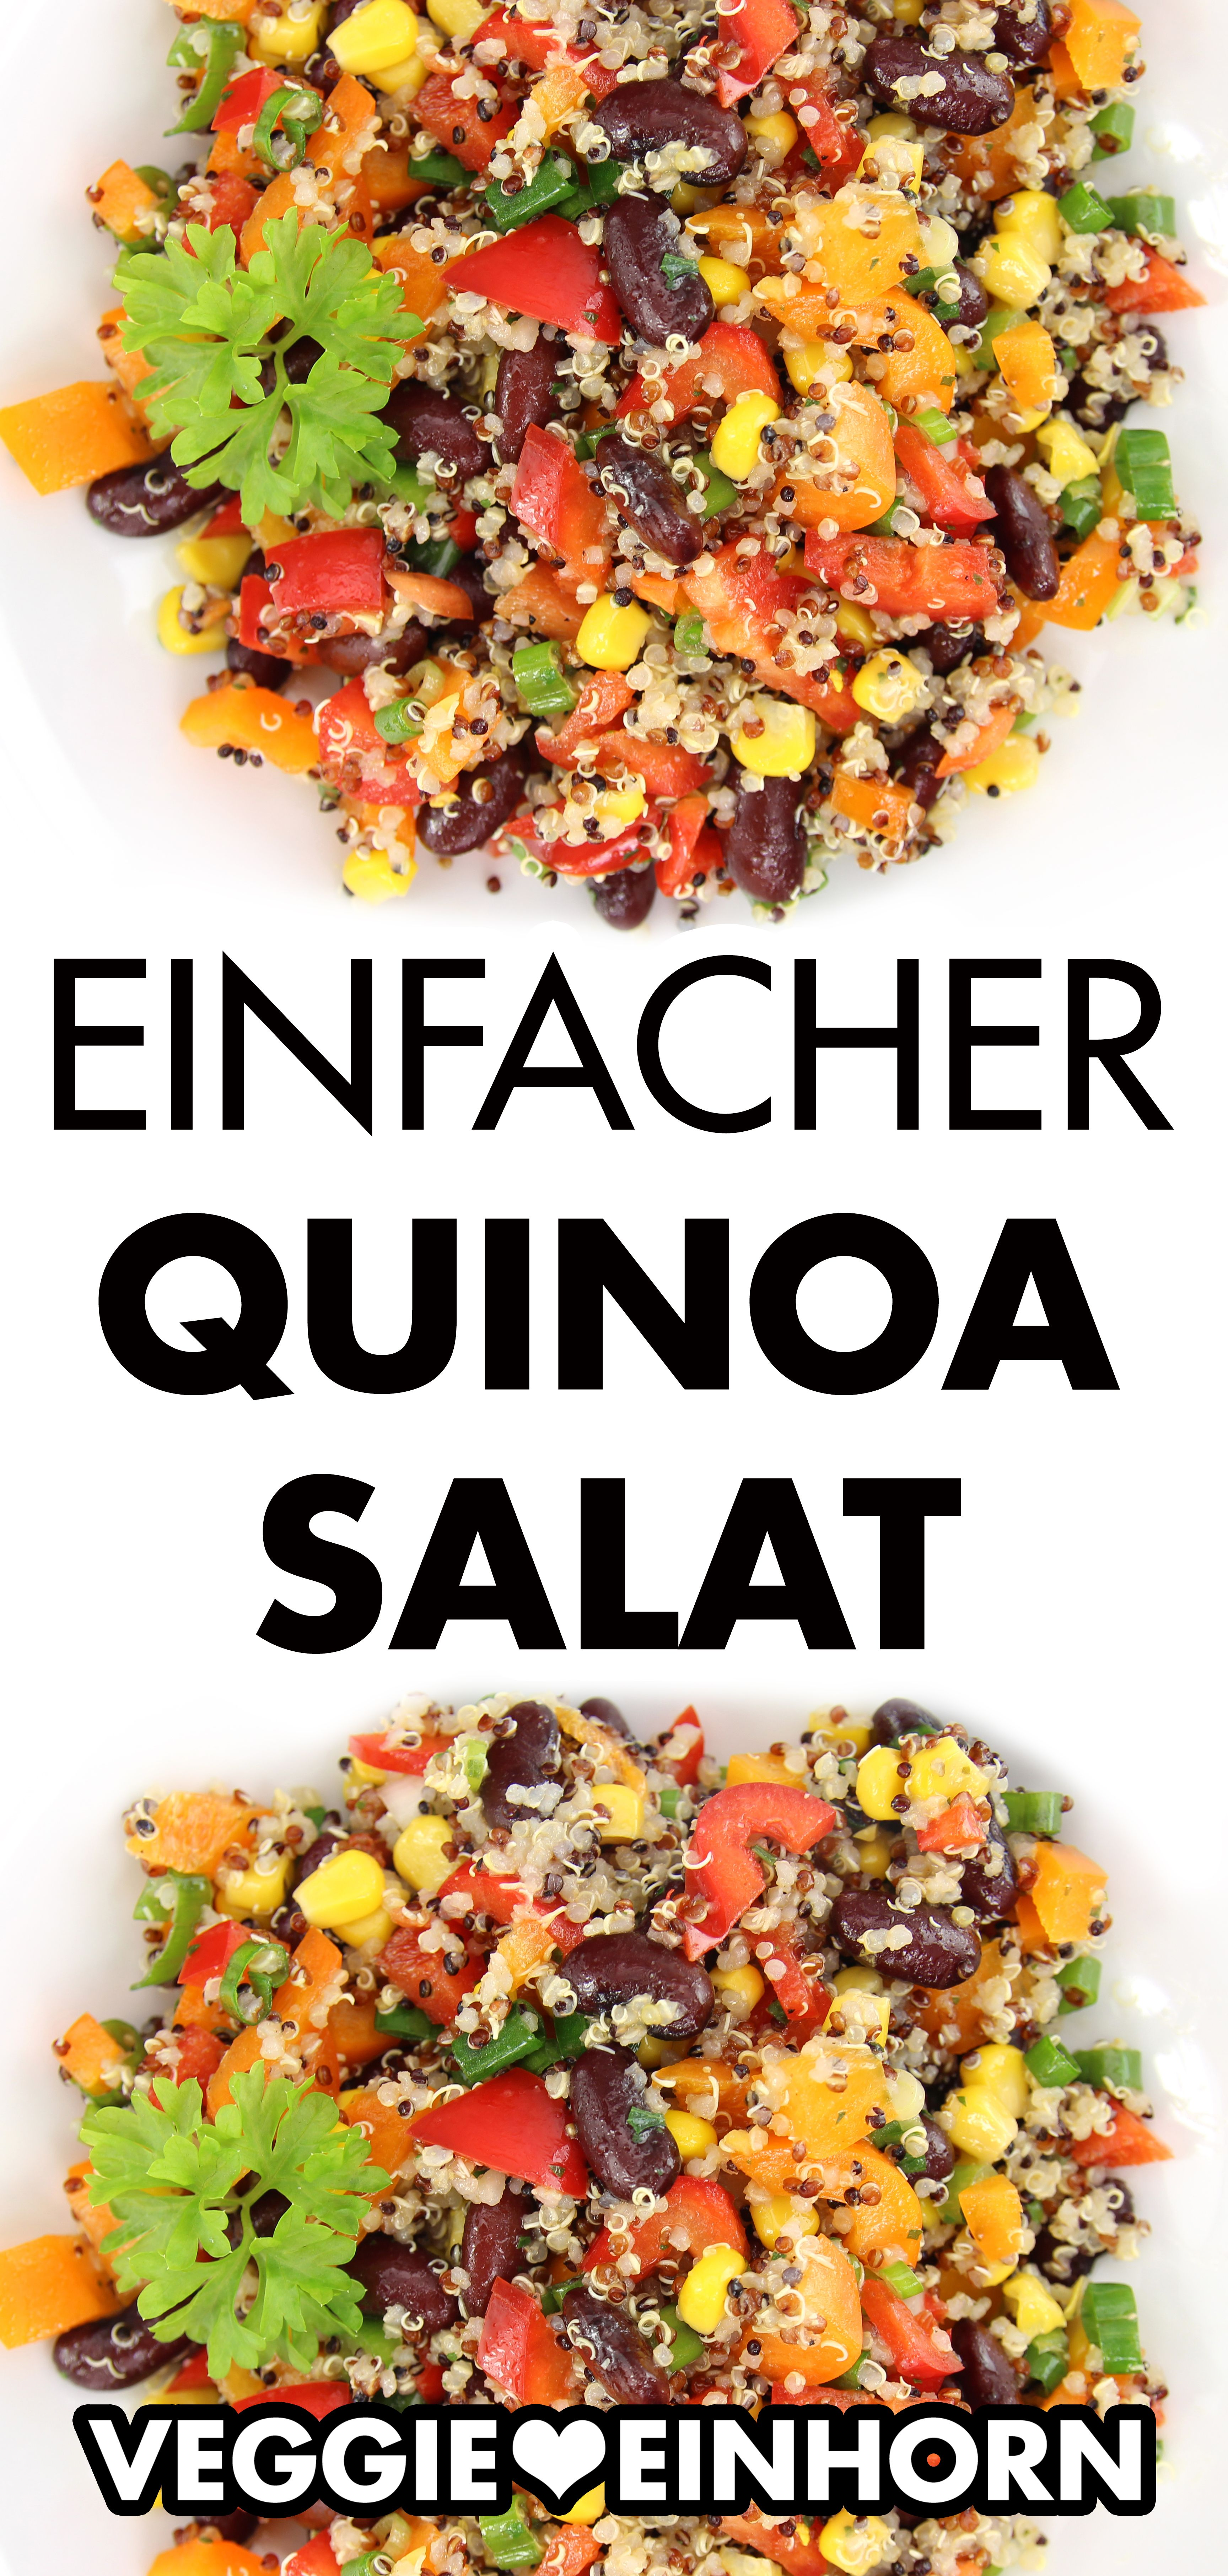 Photo of Simple Quinoa Salad | Vegetarian and vegan | Healthy quinoa salad